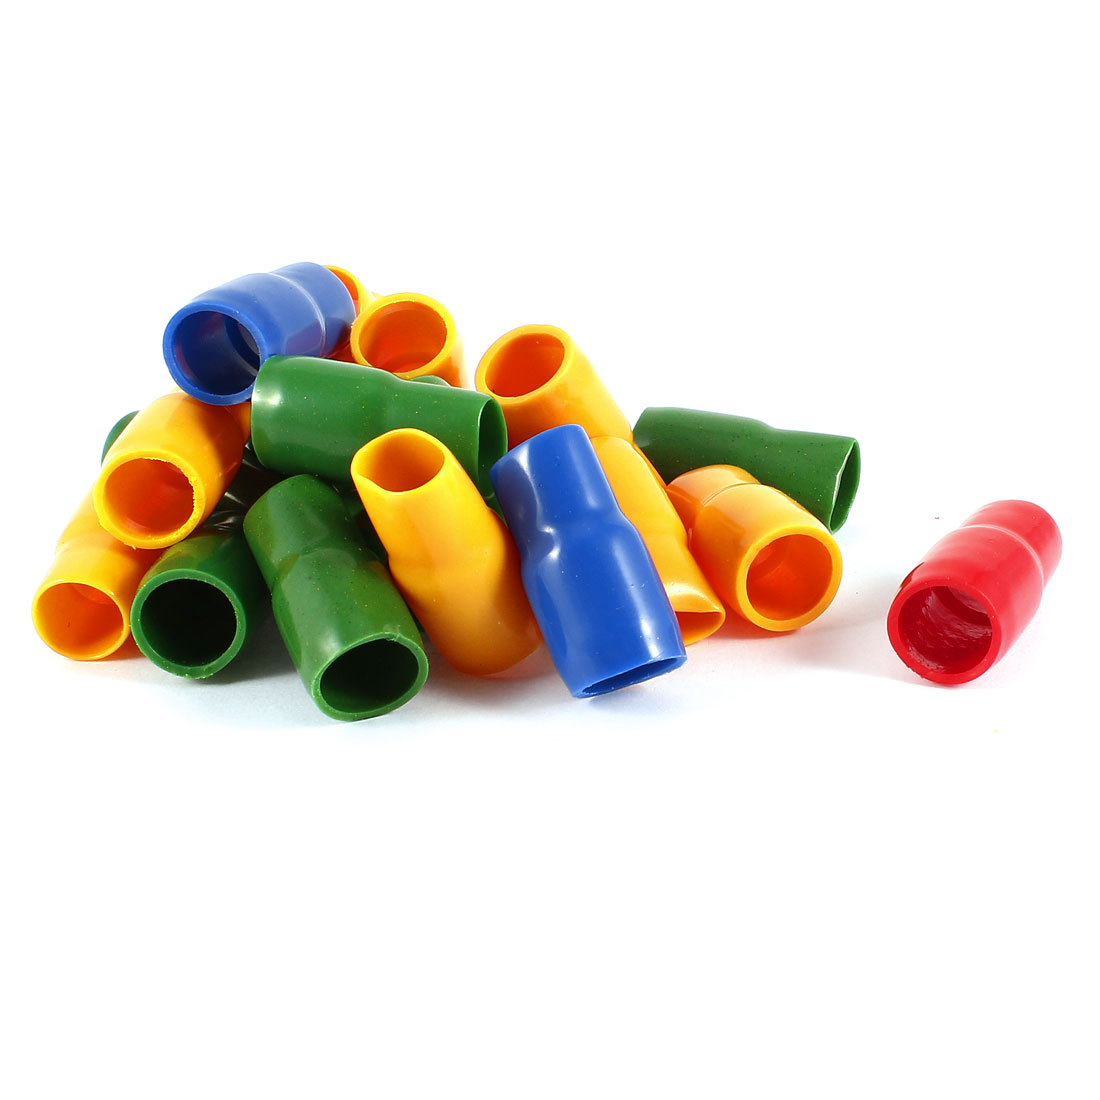 20 Pcs Soft PVC Wire V-38 35mm2 Crimp Terminal End Insulated Sleeves Cover Green Red Blue Orange